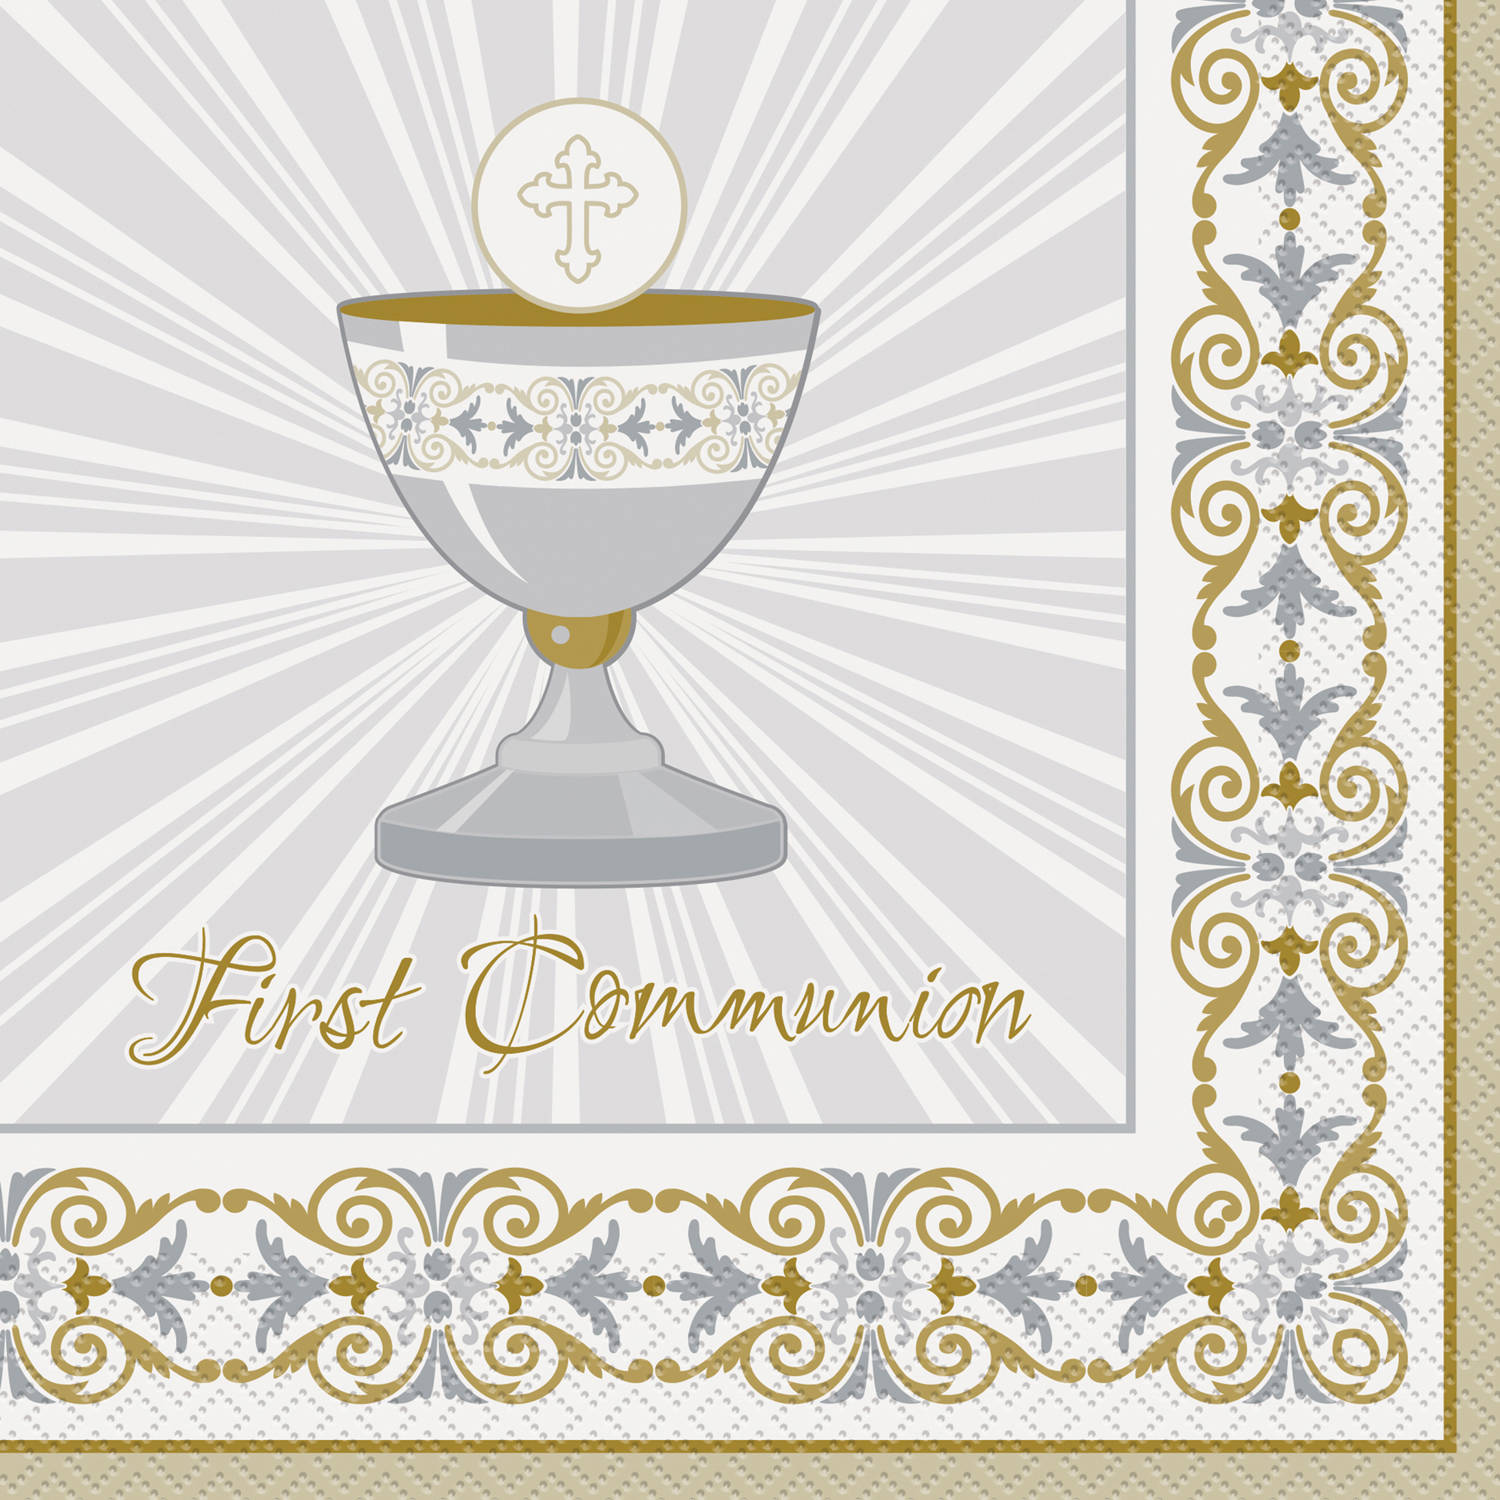 Radiant Cross First Communion Paper Luncheon Napkins 6.5 in Gold \u0026 Silver ...  sc 1 st  Walmart & Radiant Cross First Communion Paper Luncheon Napkins 6.5 in Gold ...